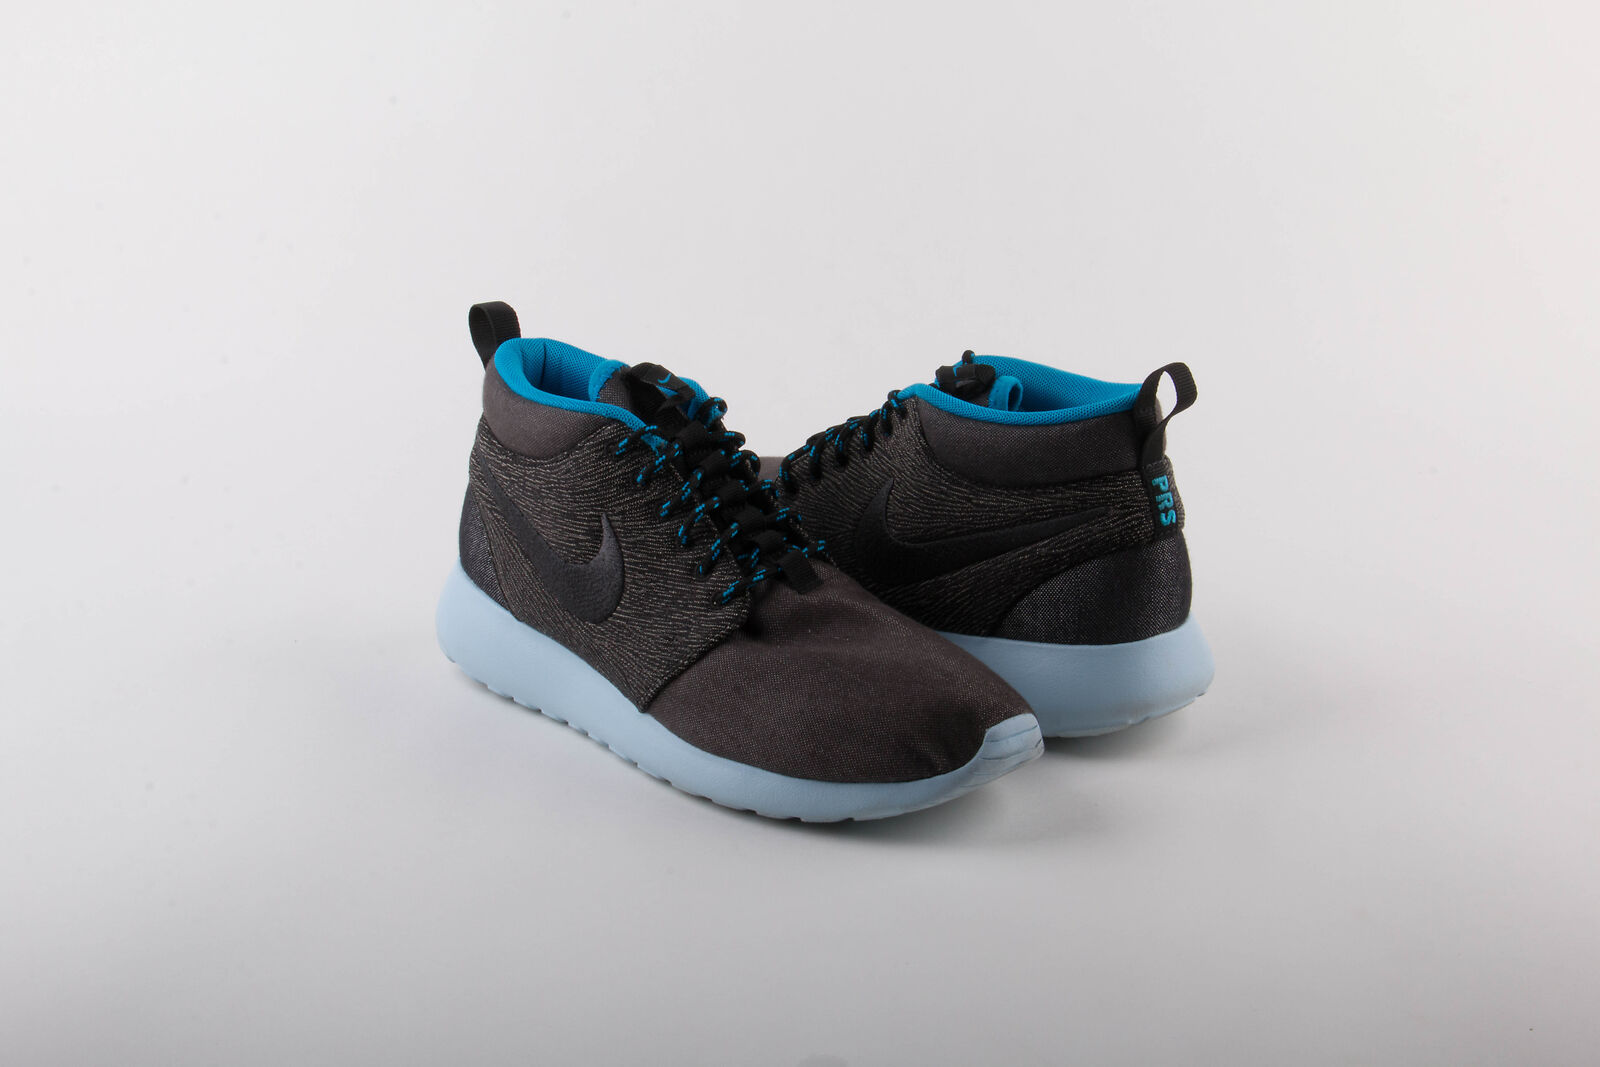 Nike Mens Rosherun Mid QS Anthracite/Blue 585898-001 Comfortable best-selling model of the brand